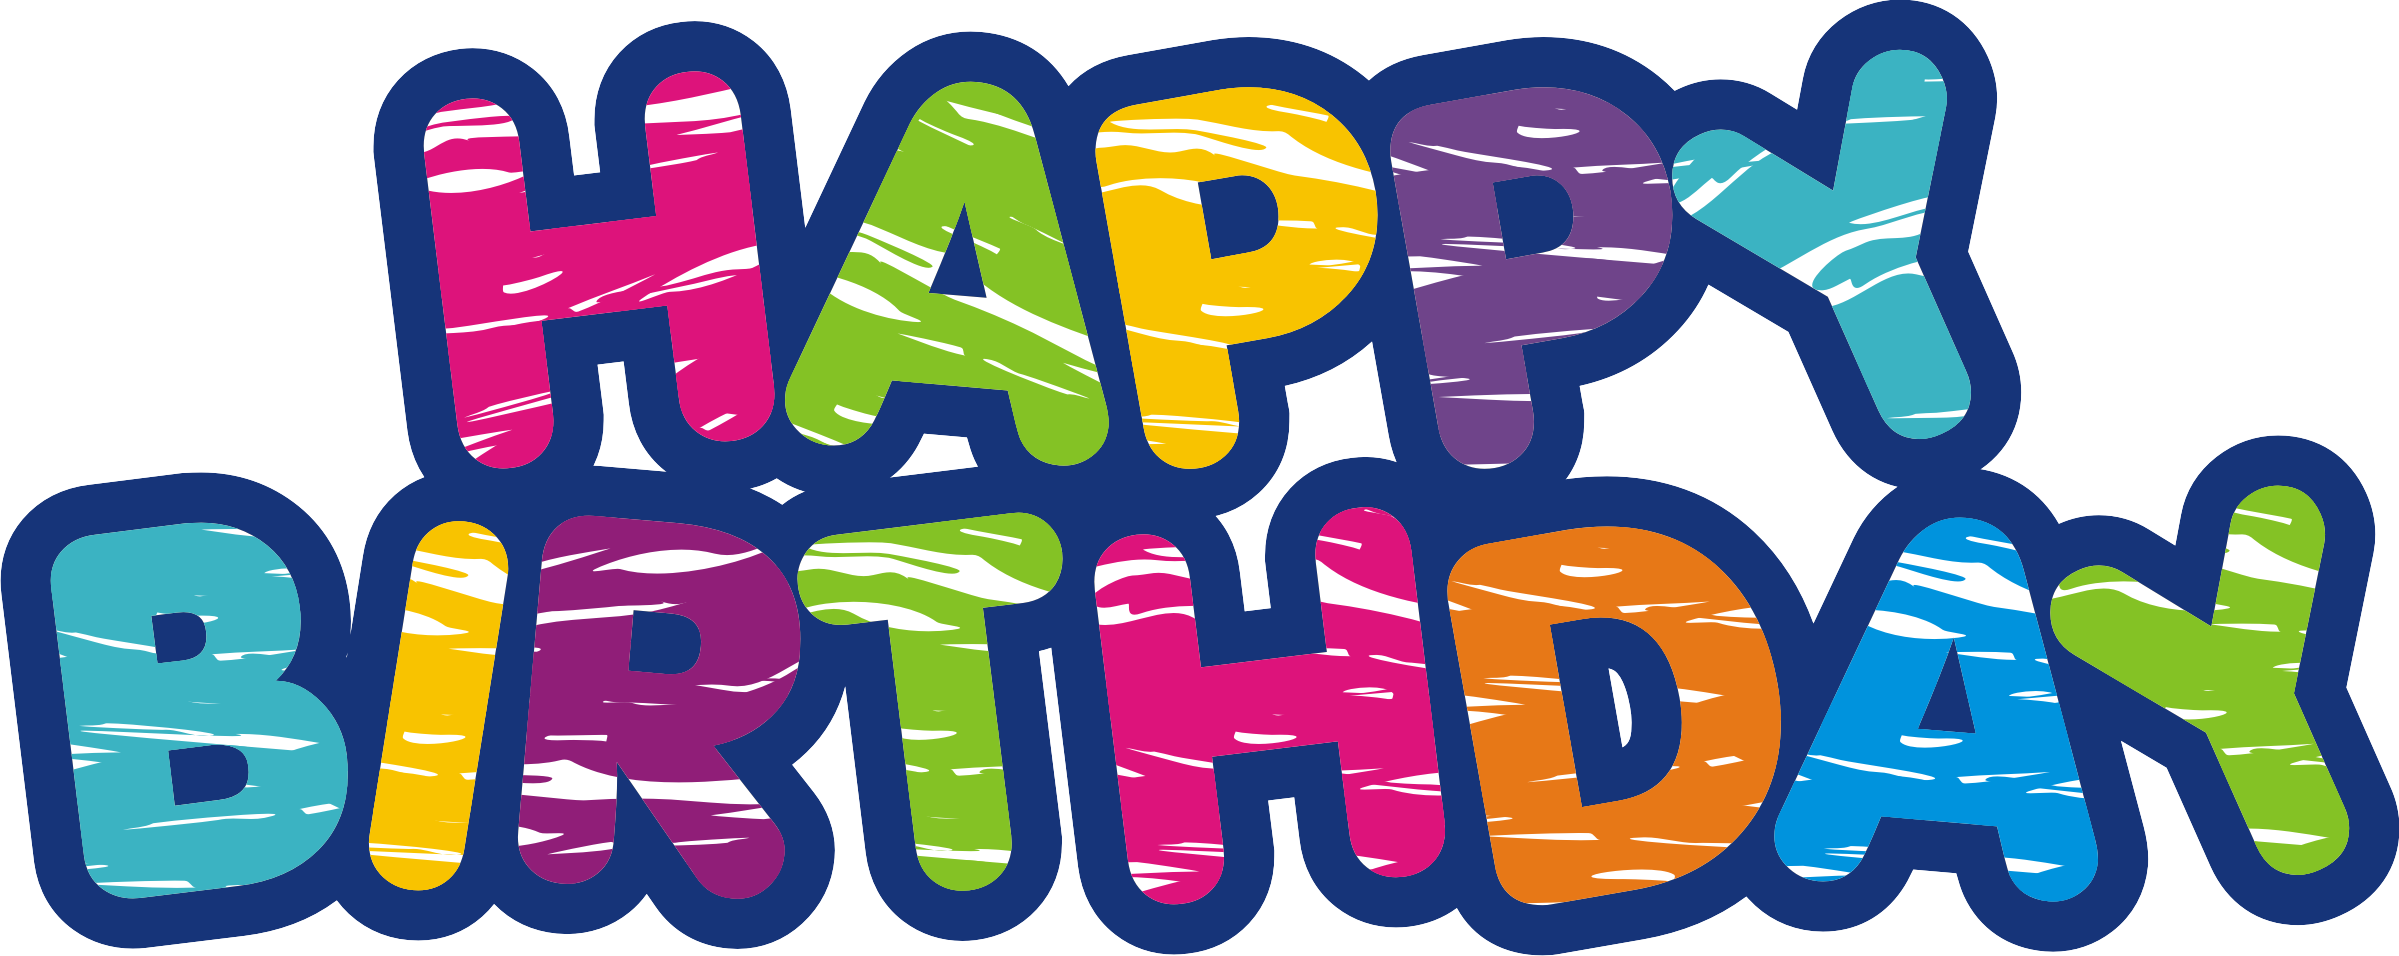 Happy birthday logo png. Images free download